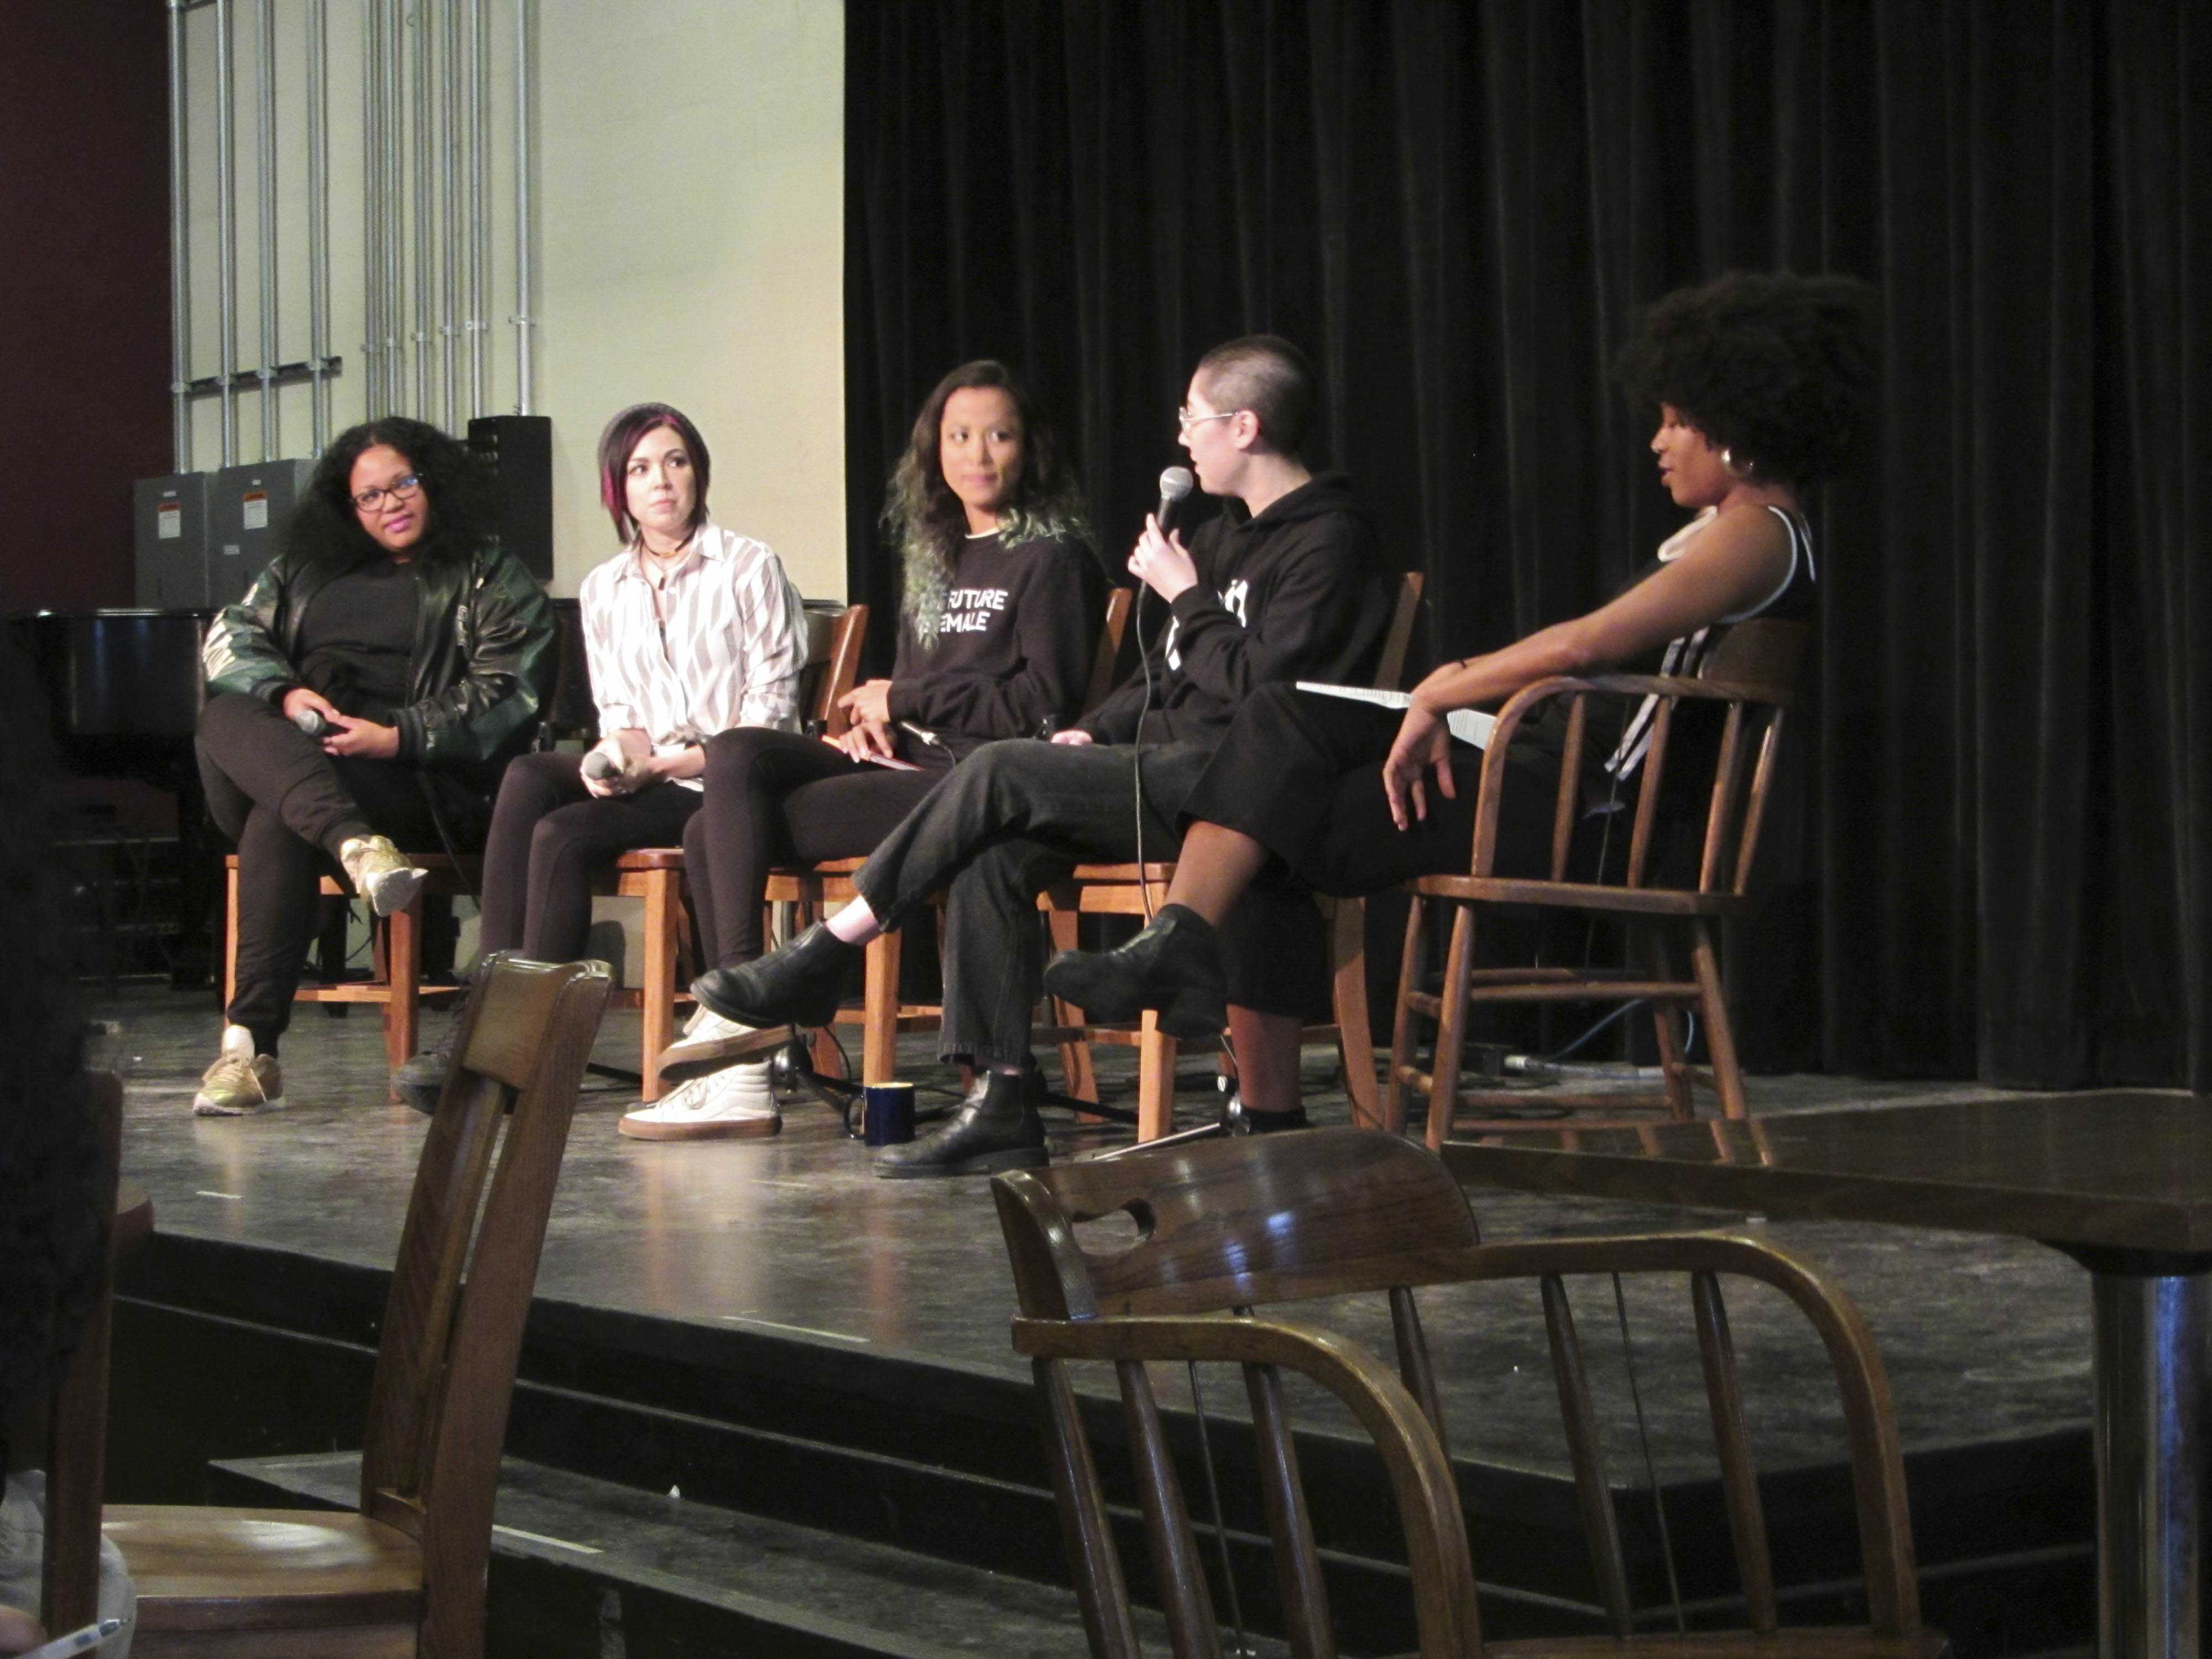 Panelists discuss diversity in predominantly white, male spaces in the music industry at an event hosted by campusbased group Femme Artists Breaking Boundaries Thursday afternoon.